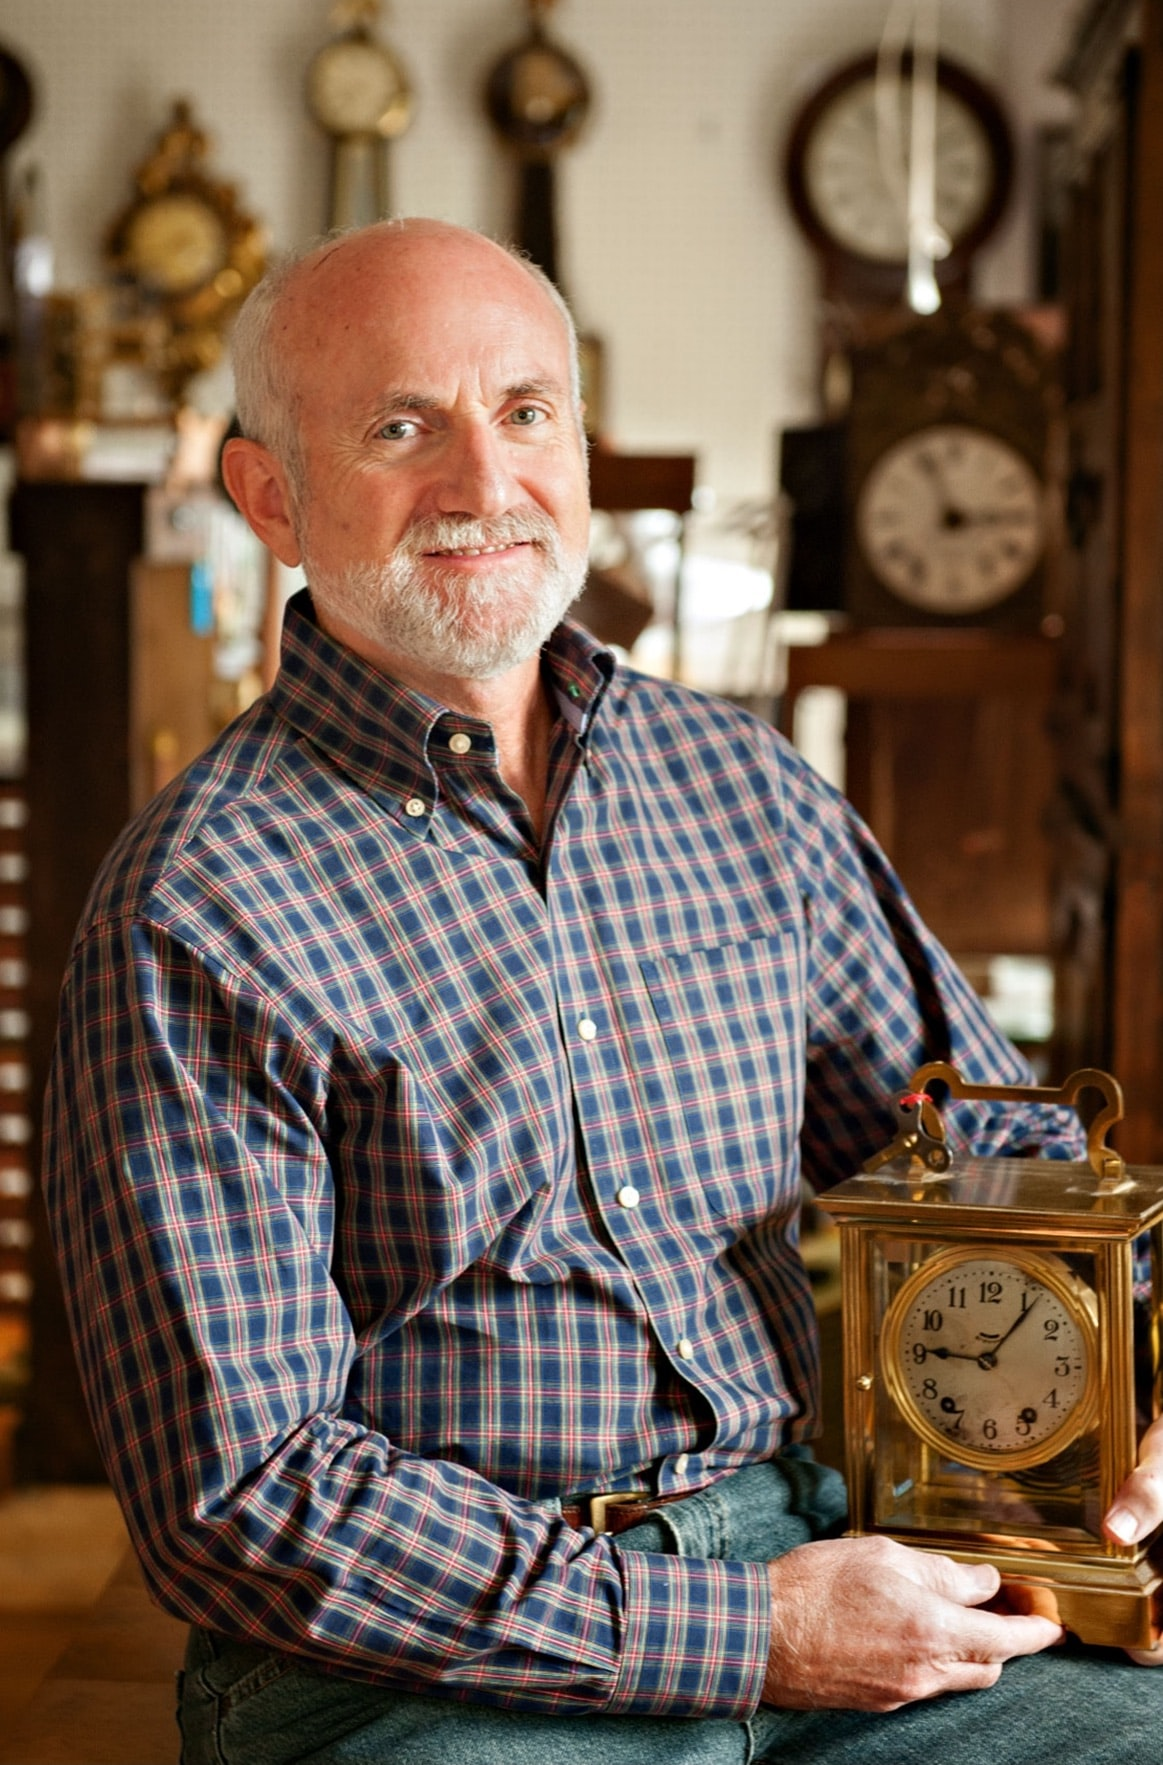 Bob Frishman Bob Frishman, Fellow Of The National Association Of Watch And Clock Collectors, To Lecture At The Horological Society Of New York Bob Frishman, Fellow Of The National Association Of Watch And Clock Collectors, To Lecture At The Horological Society Of New York bob frishman